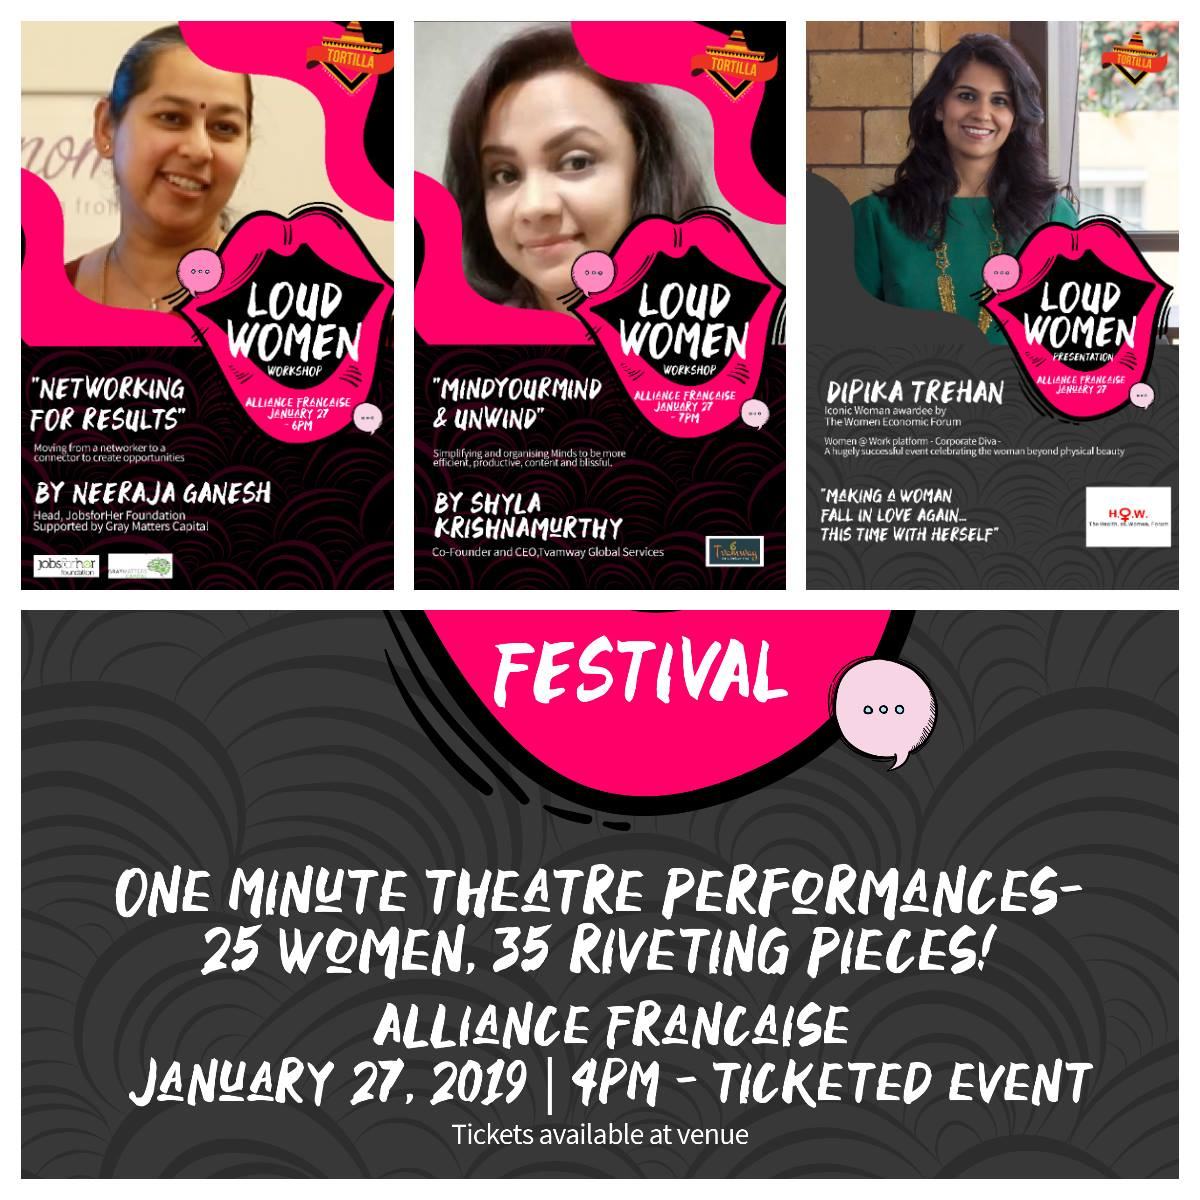 loud-women-one-minute-theatre-festival-and-break-out-sessions-for-women